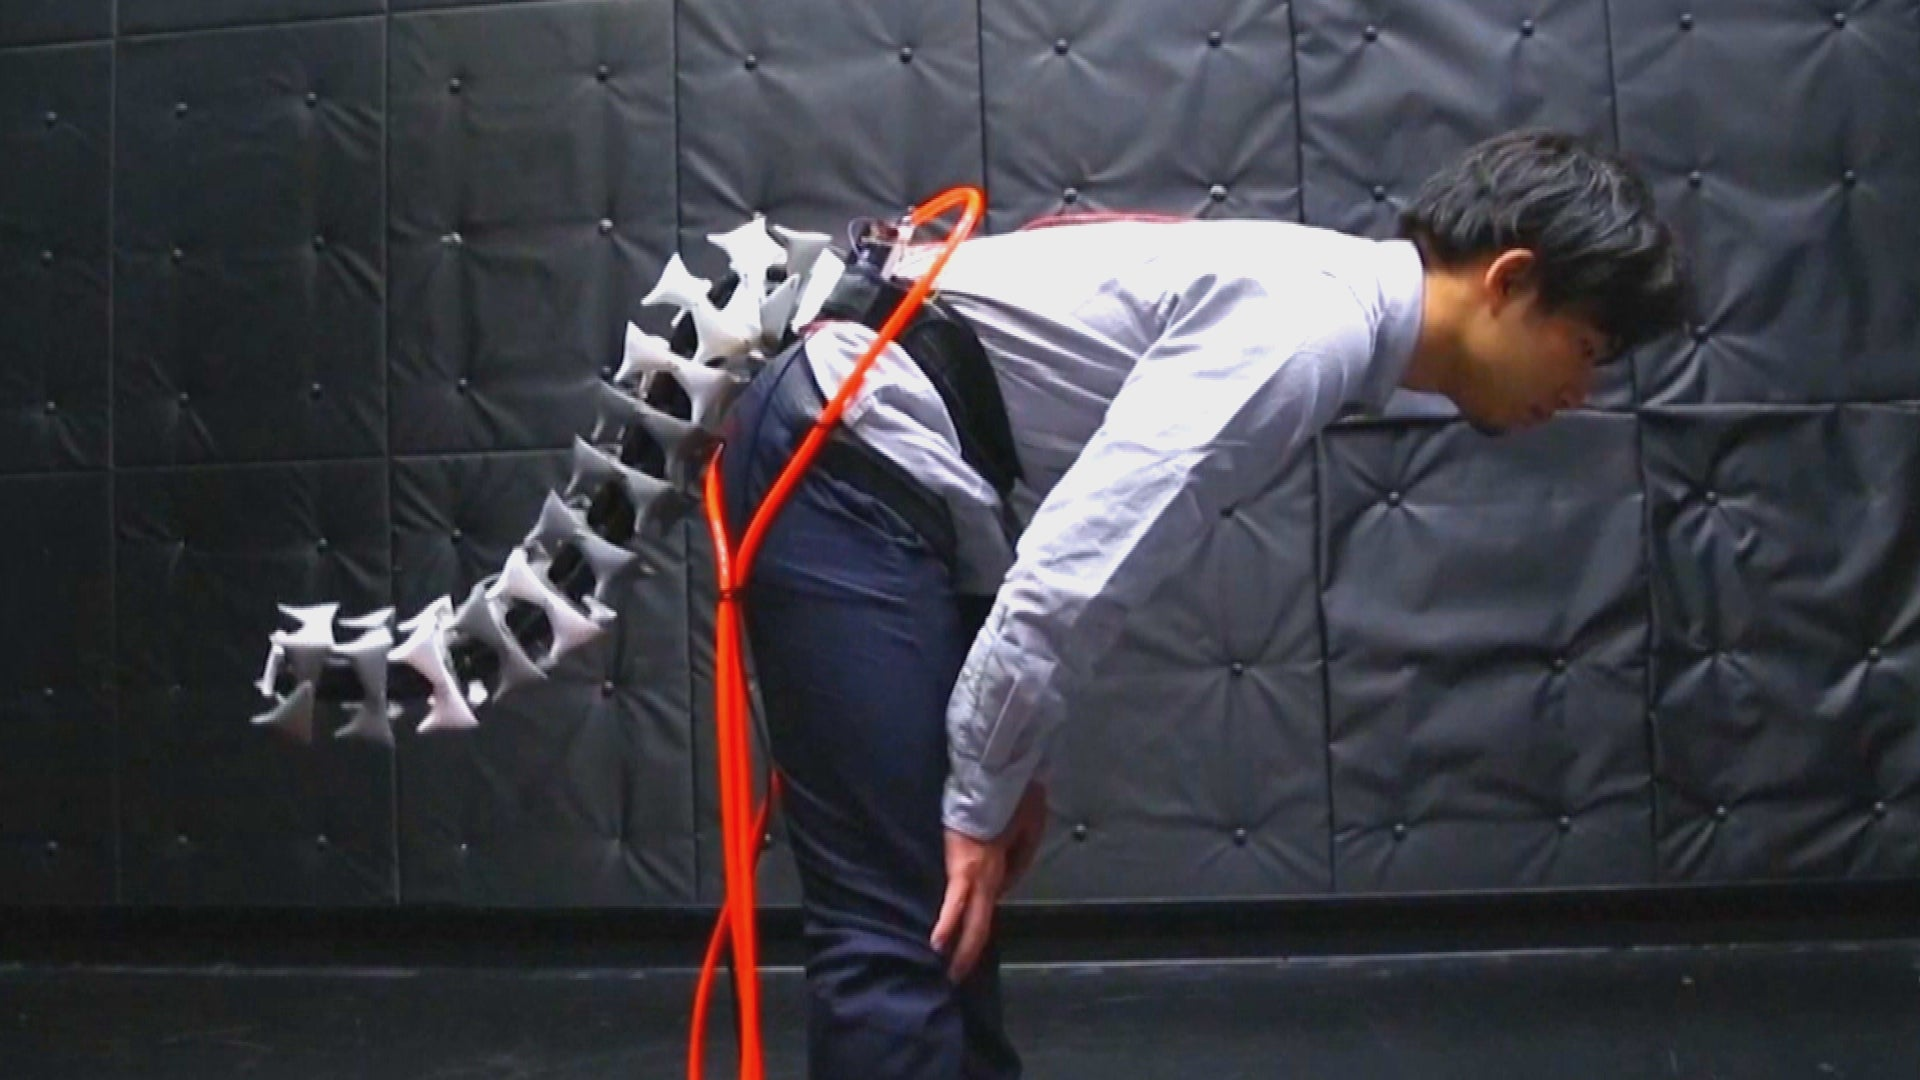 Researchers Develop Robotic Tail to Help People With Balance Problems